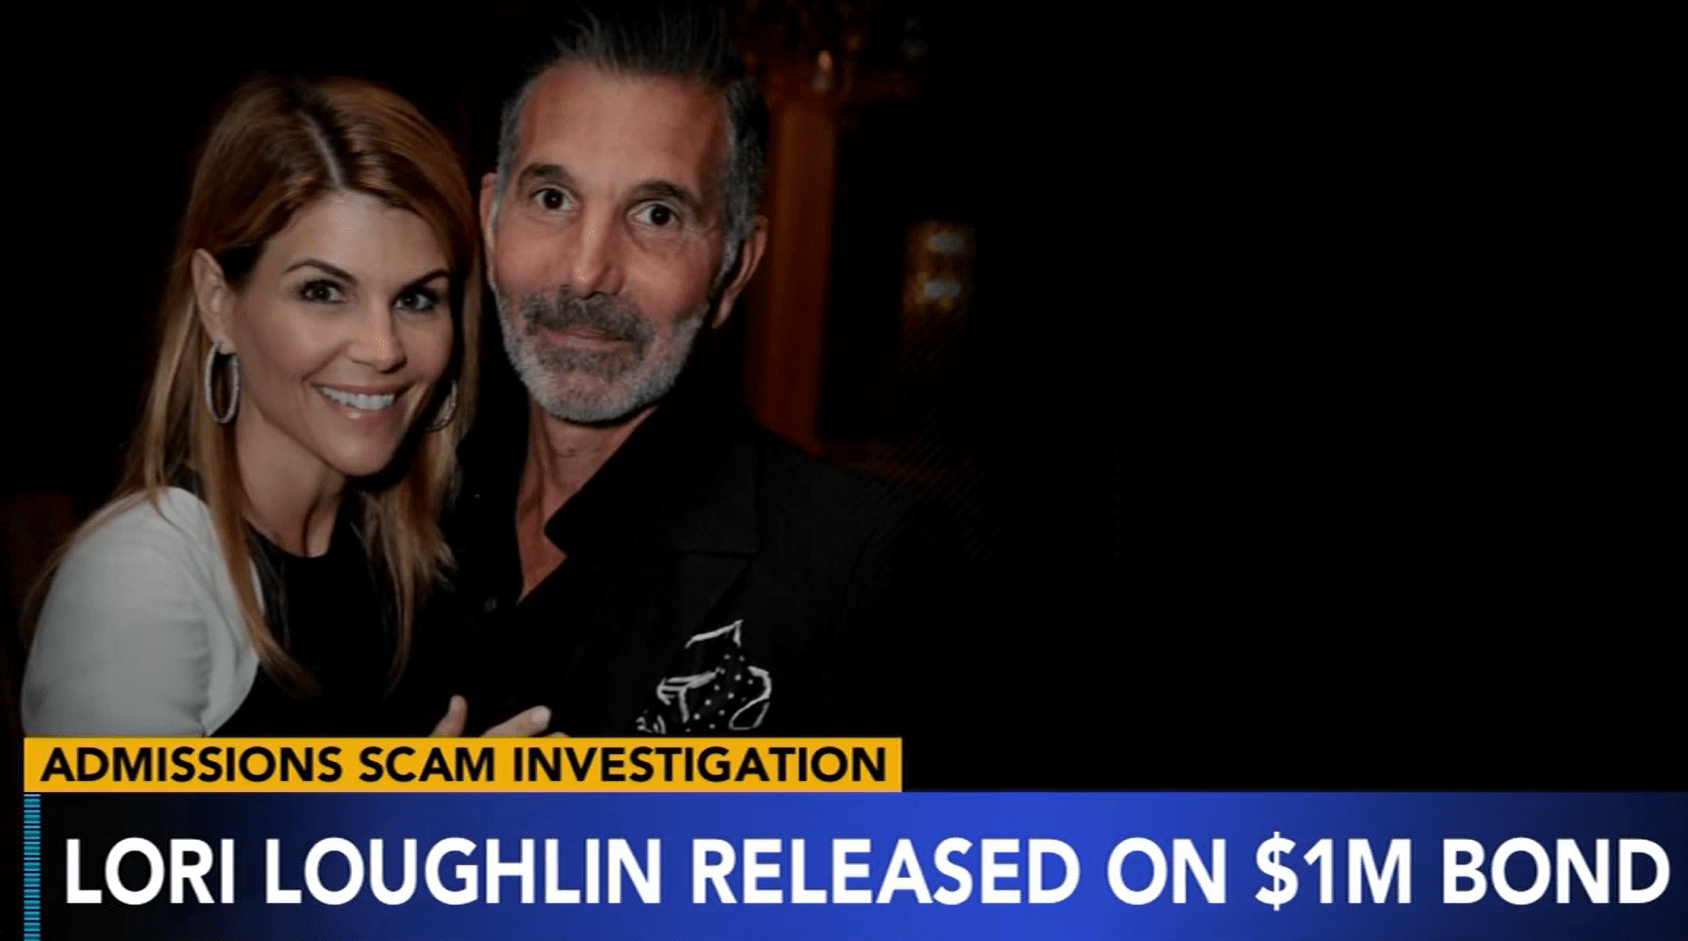 Lori Loughlin released on $1M bond in college admisions scandal